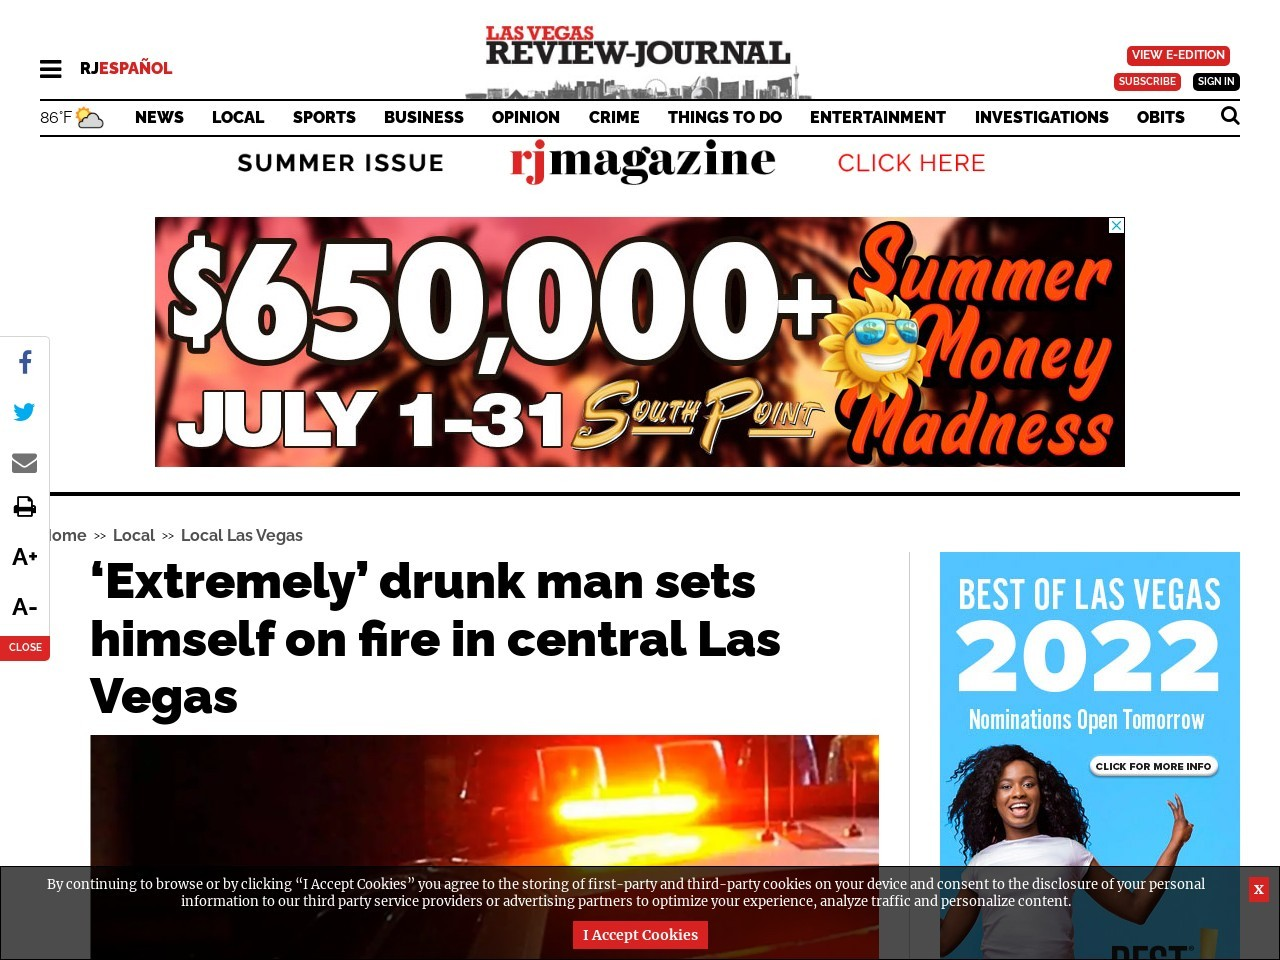 'Extremely' drunk man sets himself on fire in central Las Vegas